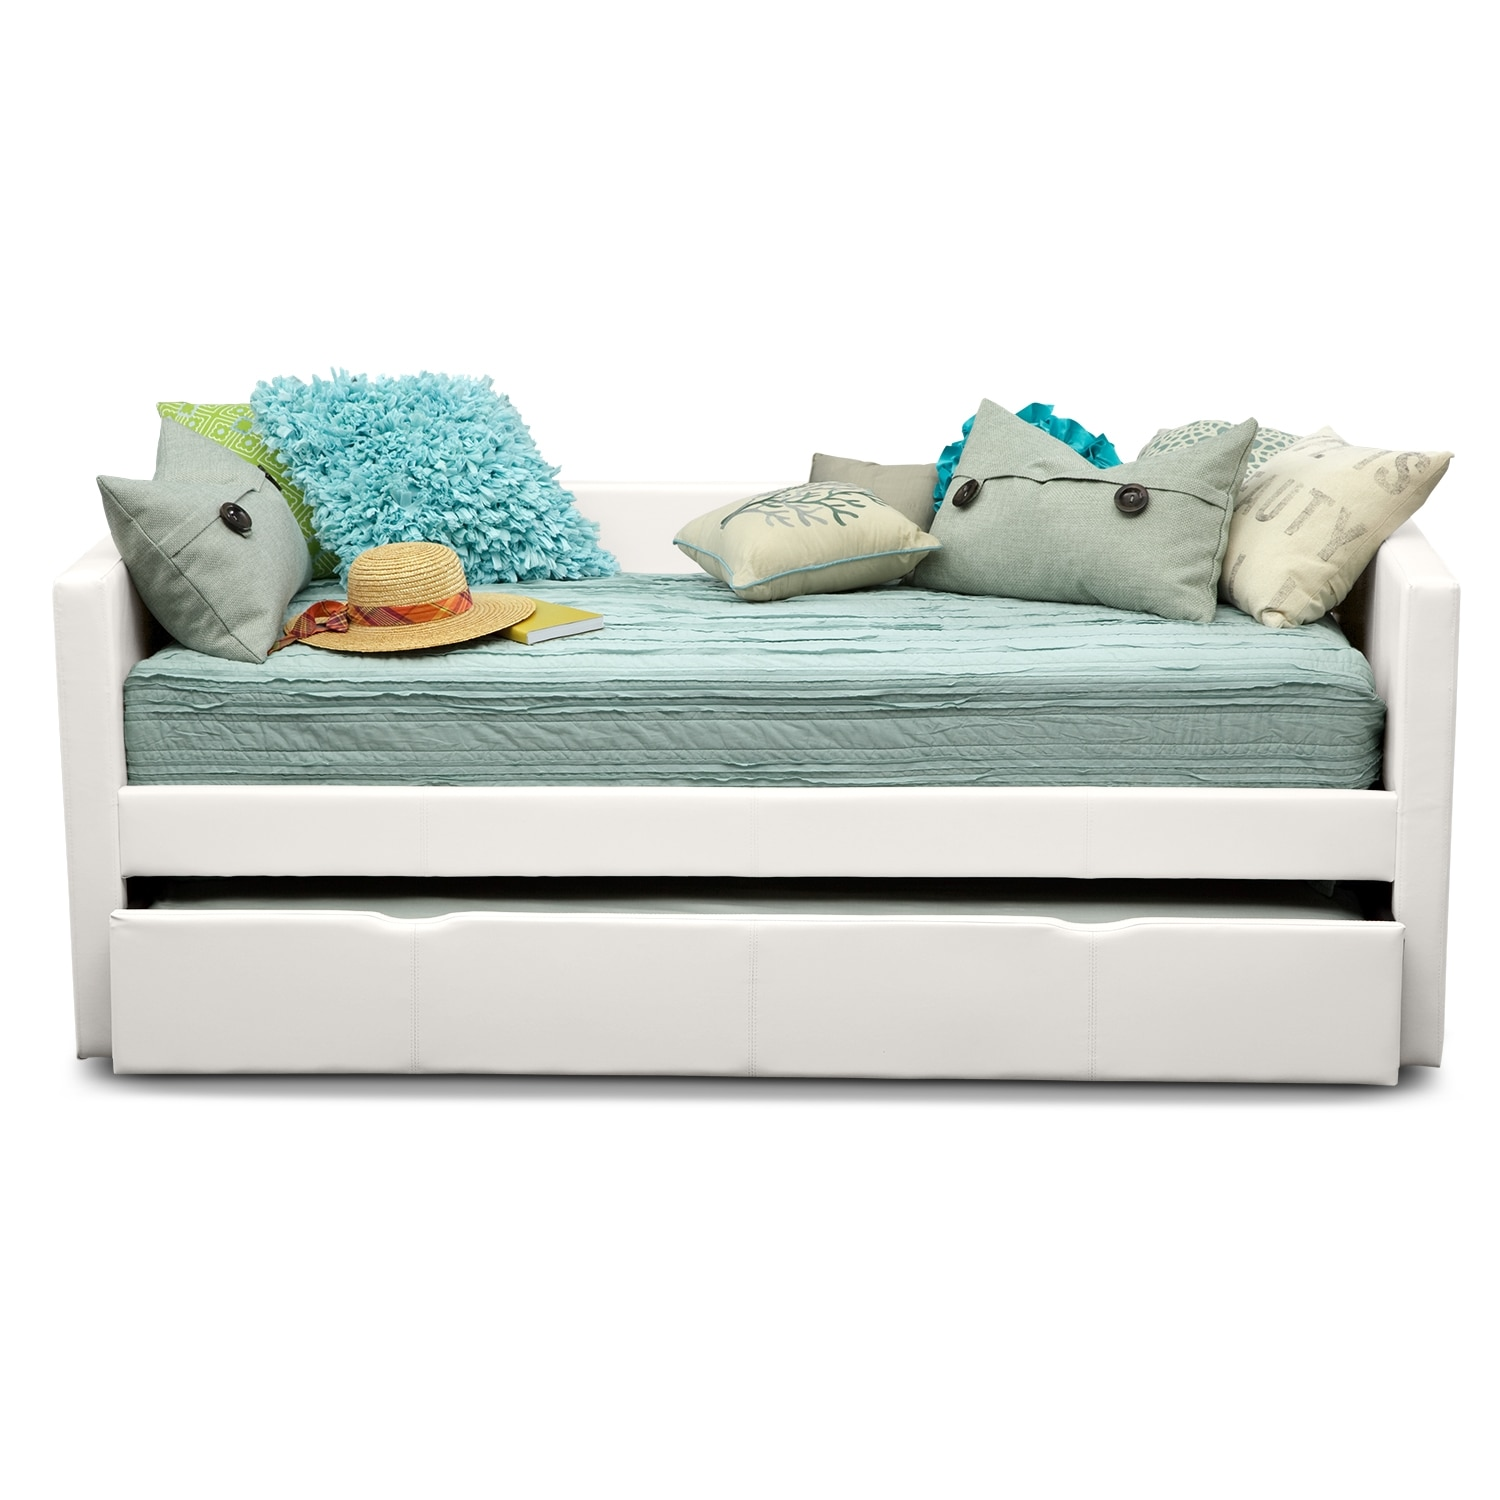 Twin trundle bed white - Click To Change Image